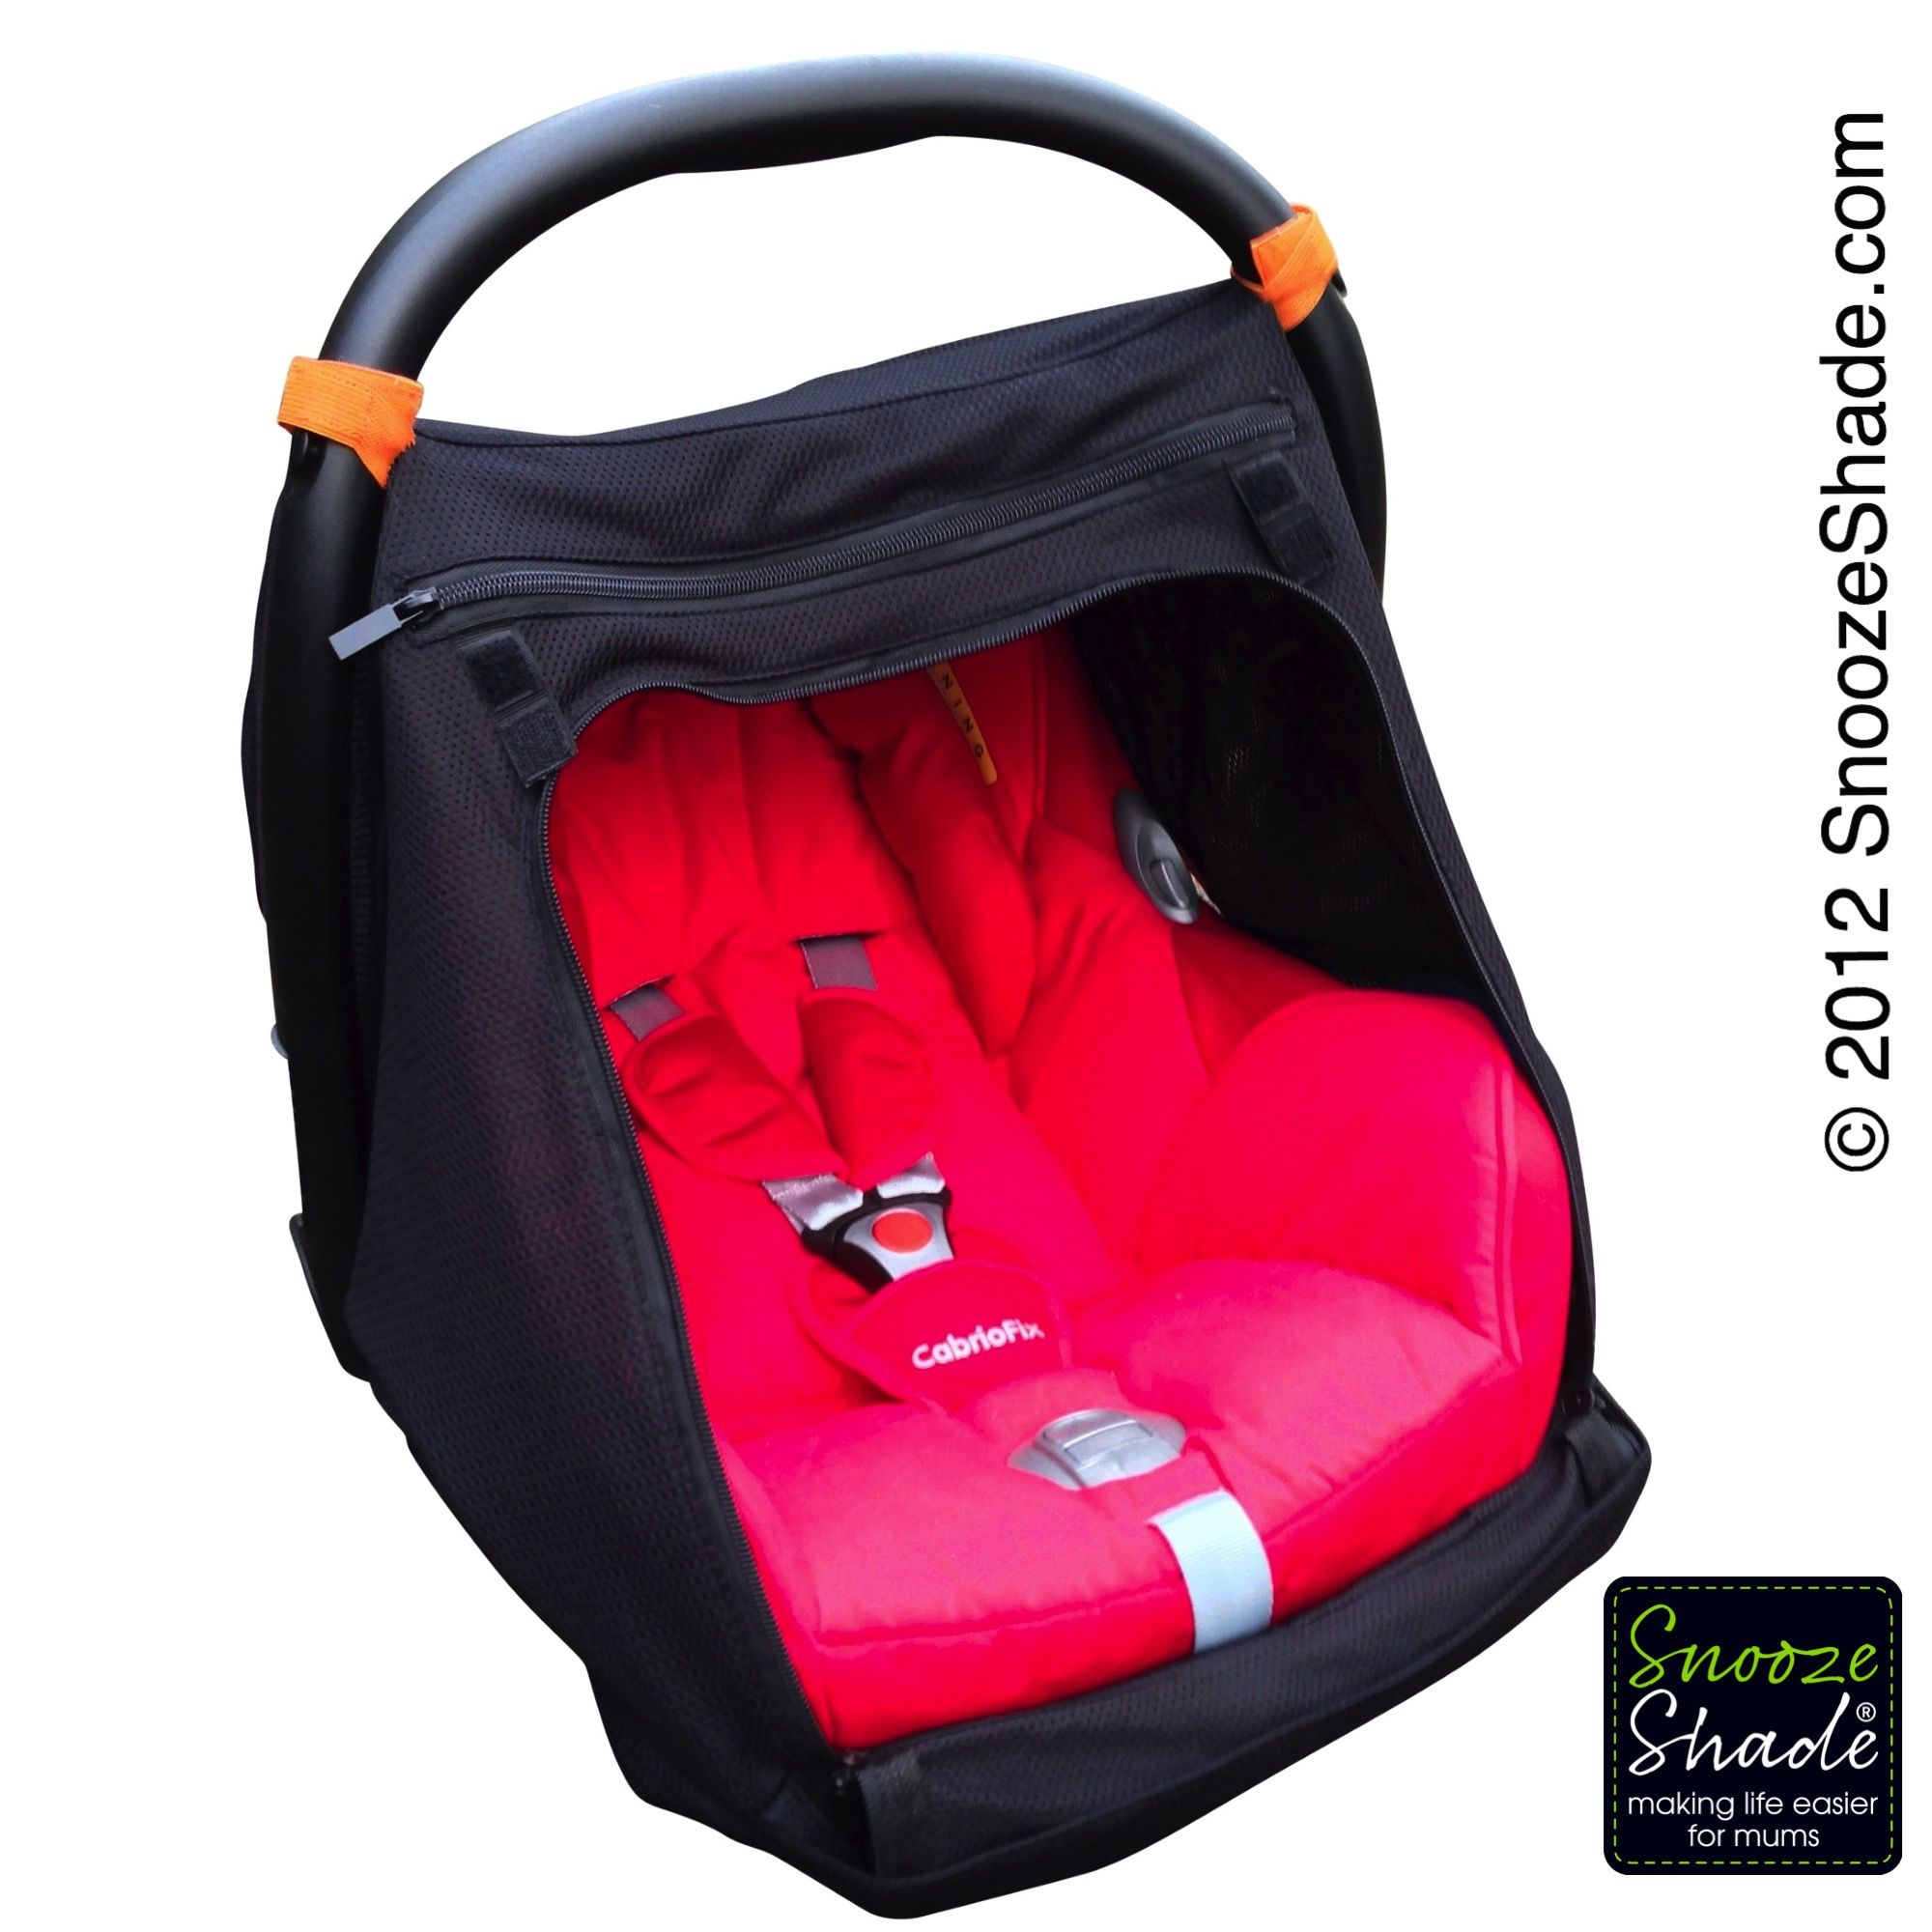 Click here for the Car seat sun shade & portable blackout